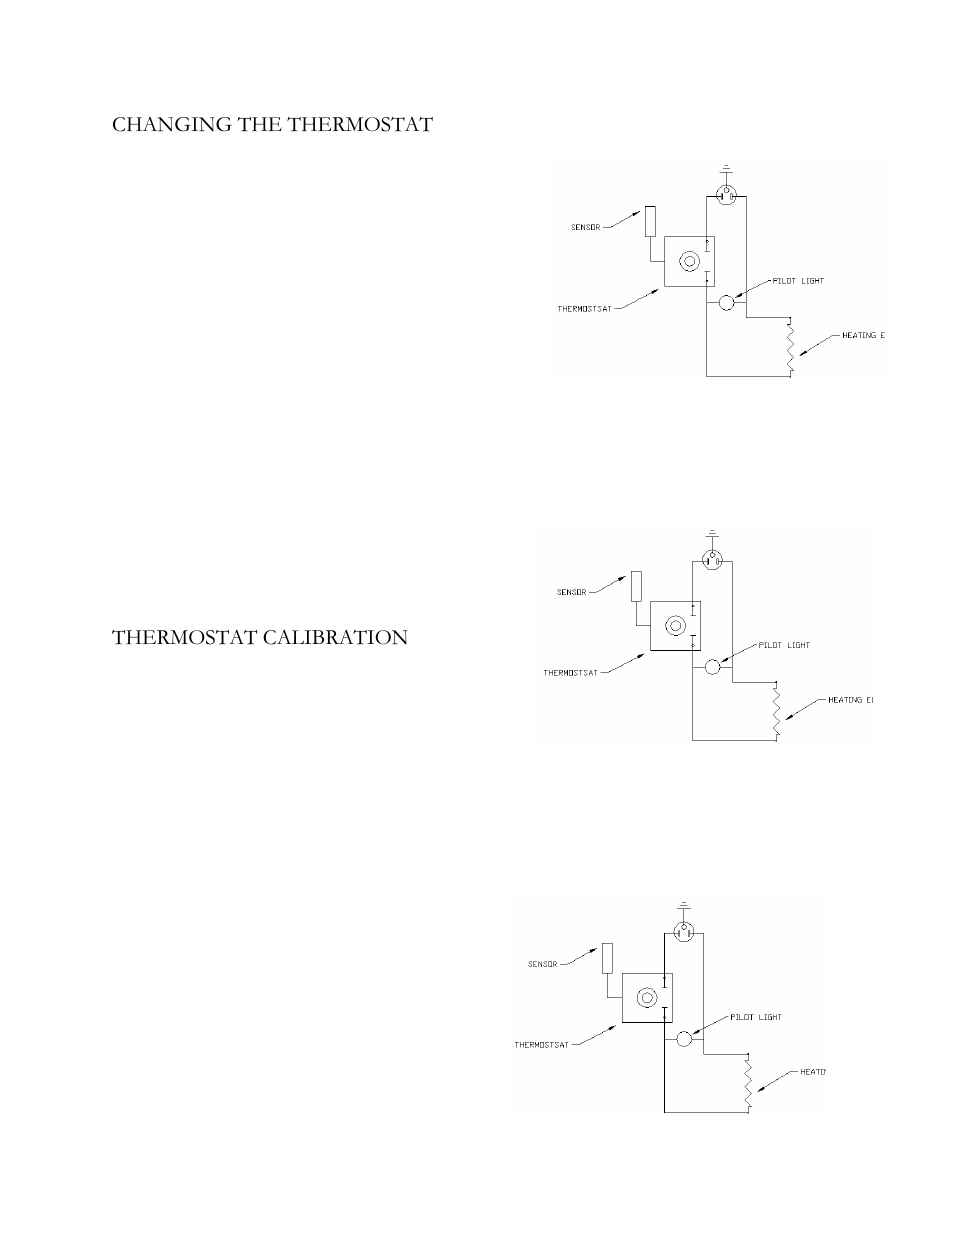 medium resolution of changing the thermostat thermostat calibration henkel keen ovens k 450 user manual page 6 8